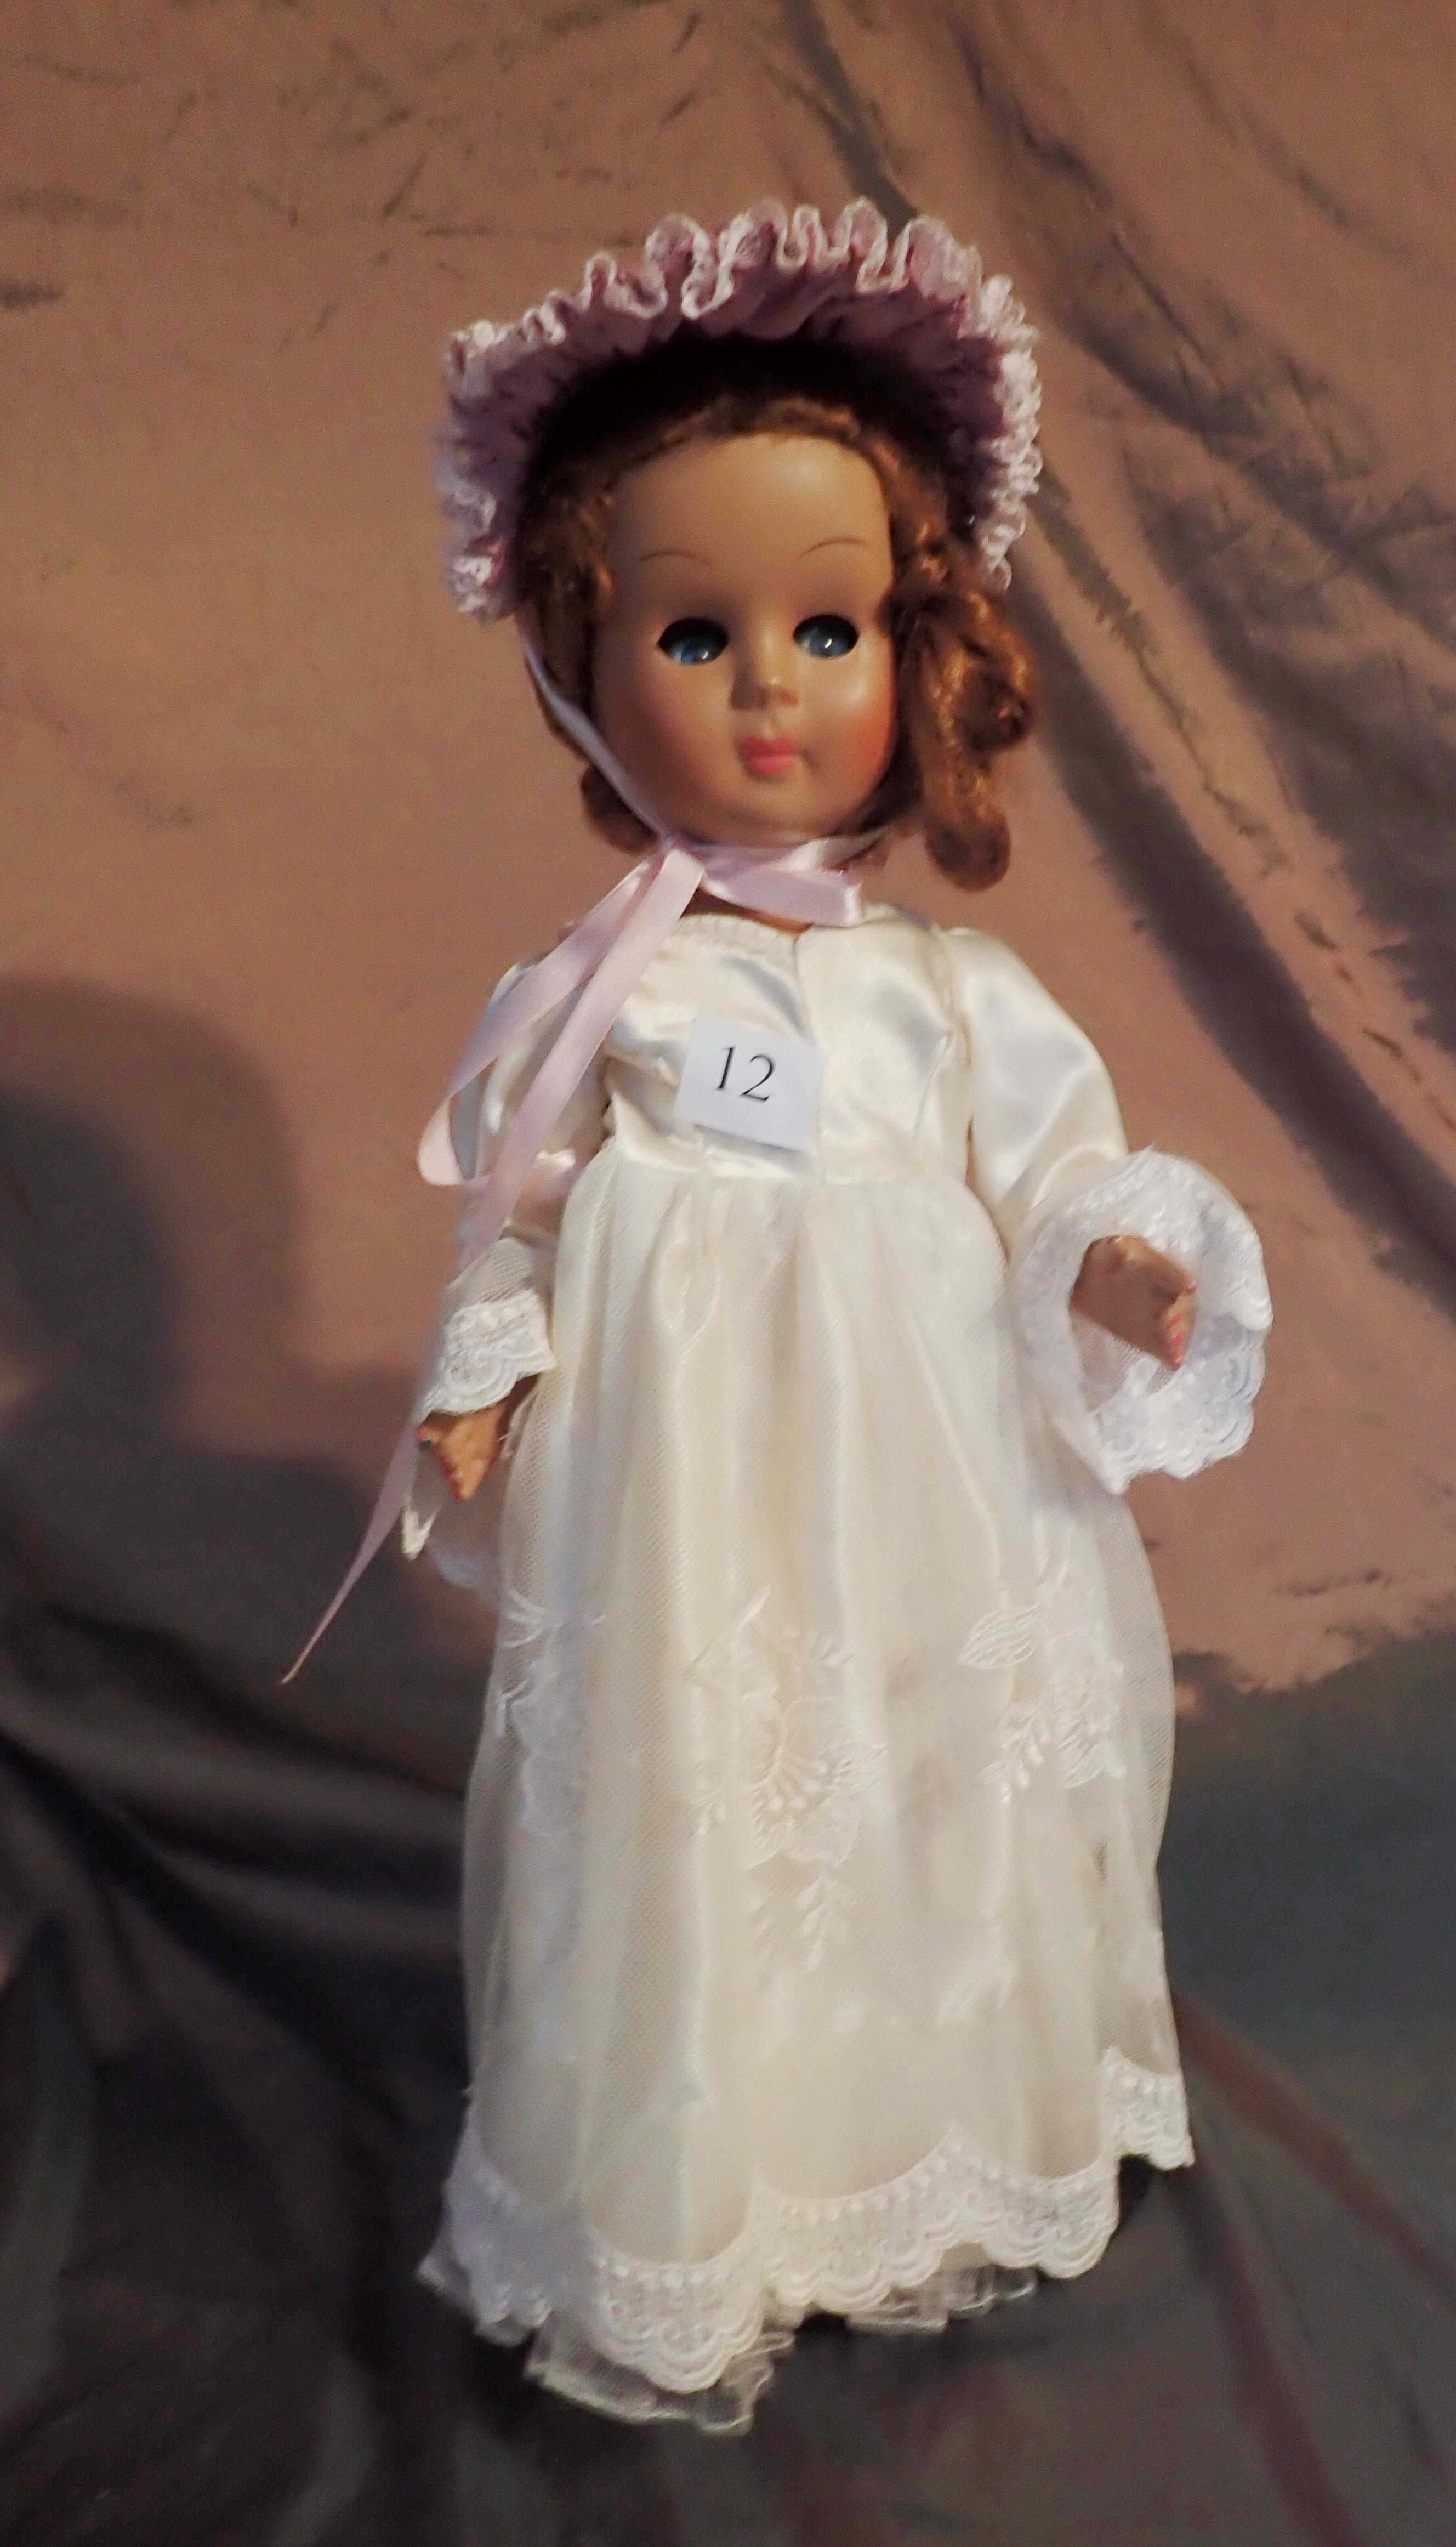 """17"""" VINTAGE ITALIAN 1950S DOLL MARKED ATHENA PIACENZA TYPE 40 WITH VOICE BOX TO THE FRONT IN WEDDING DRESS AND HAT, 2 MARKS ON NECK"""